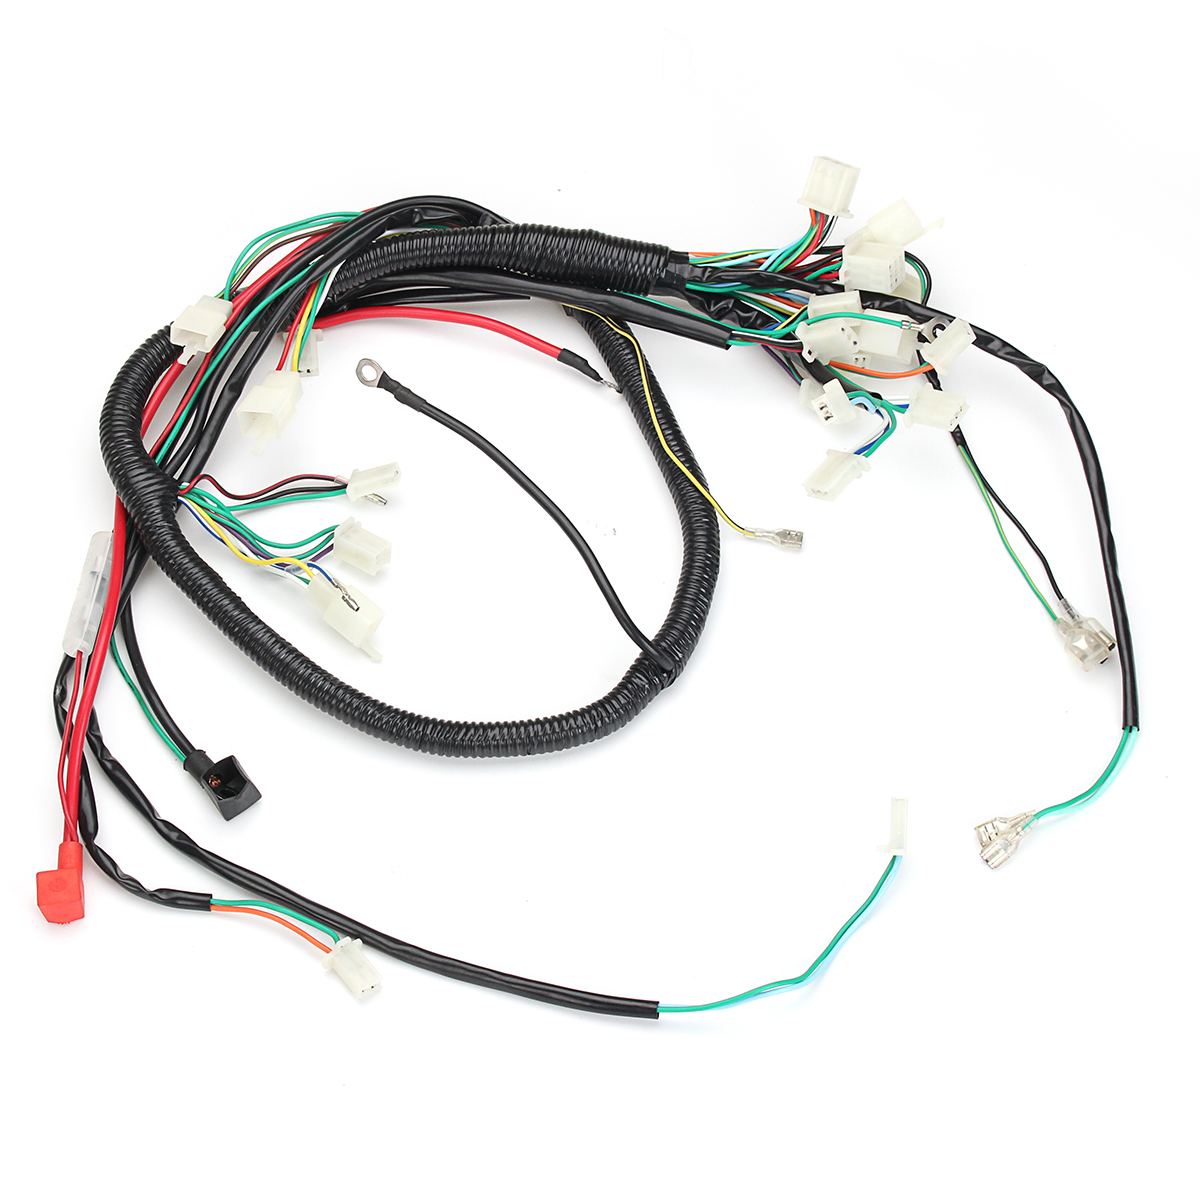 Fits For Gy6 125cc 150cc Atv Quad Bike Go Kart Wire Loom Coil Wiring Harness Assembly Length 189cm Car Lights In From Automobiles Motorcycles On